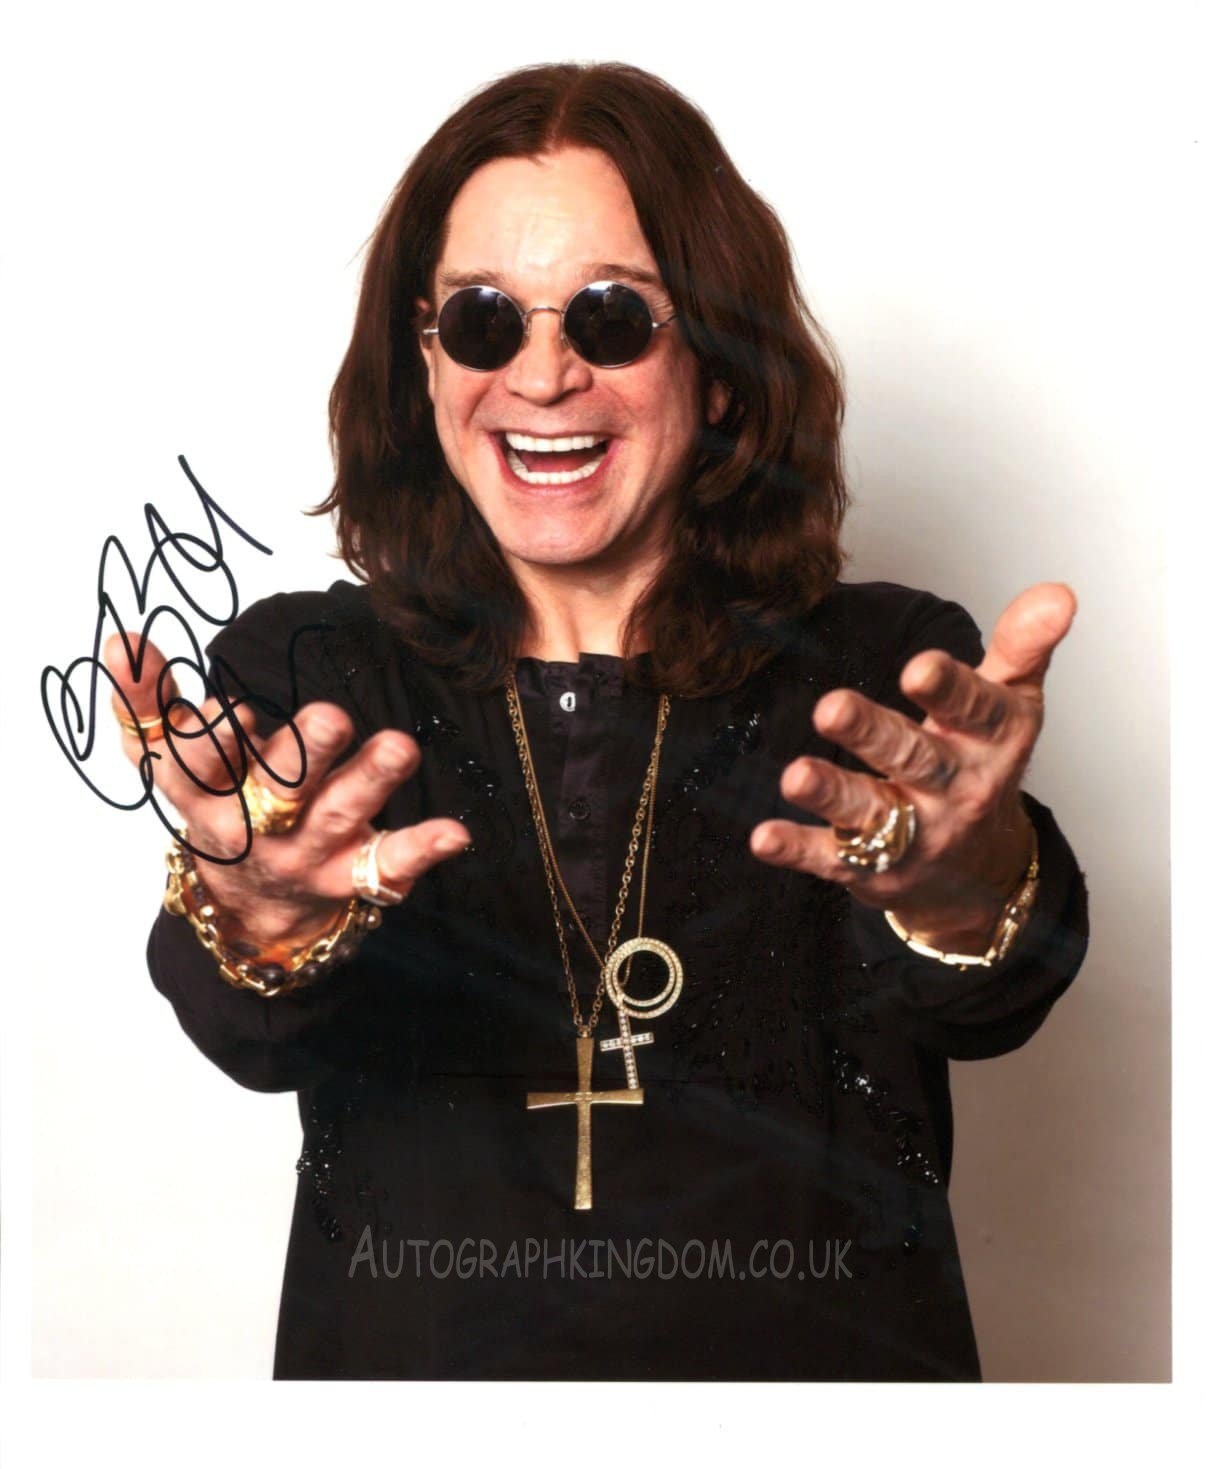 """Ozzy Osbourne The Prince of Darkness 8 x 6"""" Autographed Photo (Reprint: 2021) FREE SHIPPING"""